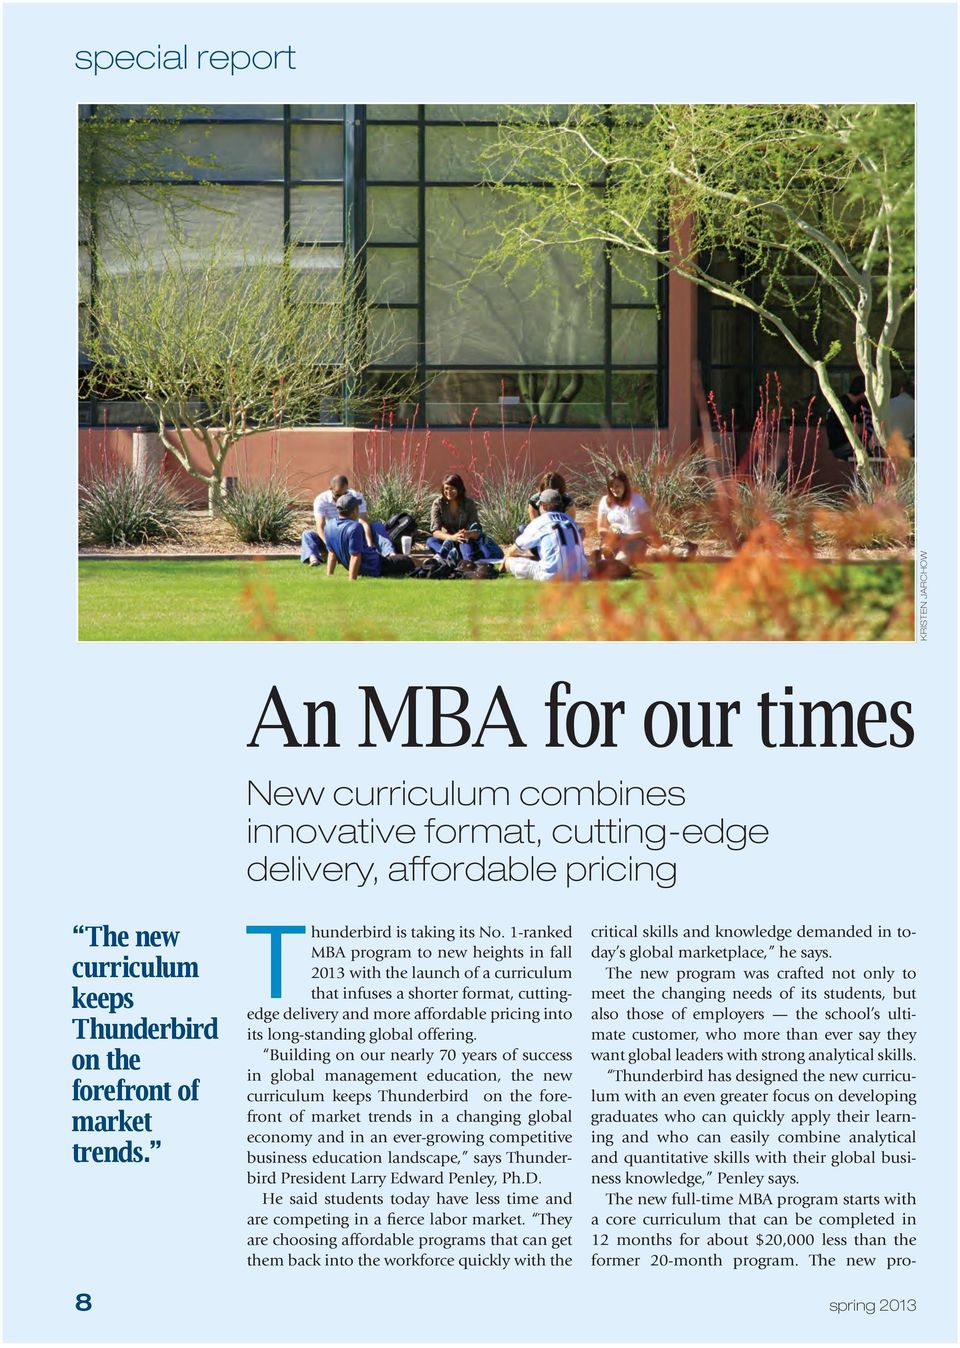 1-ranked MBA program to new heights in fall 2013 with the launch of a curriculum that infuses a shorter format, cuttingedge delivery and more affordable pricing into its long-standing global offering.